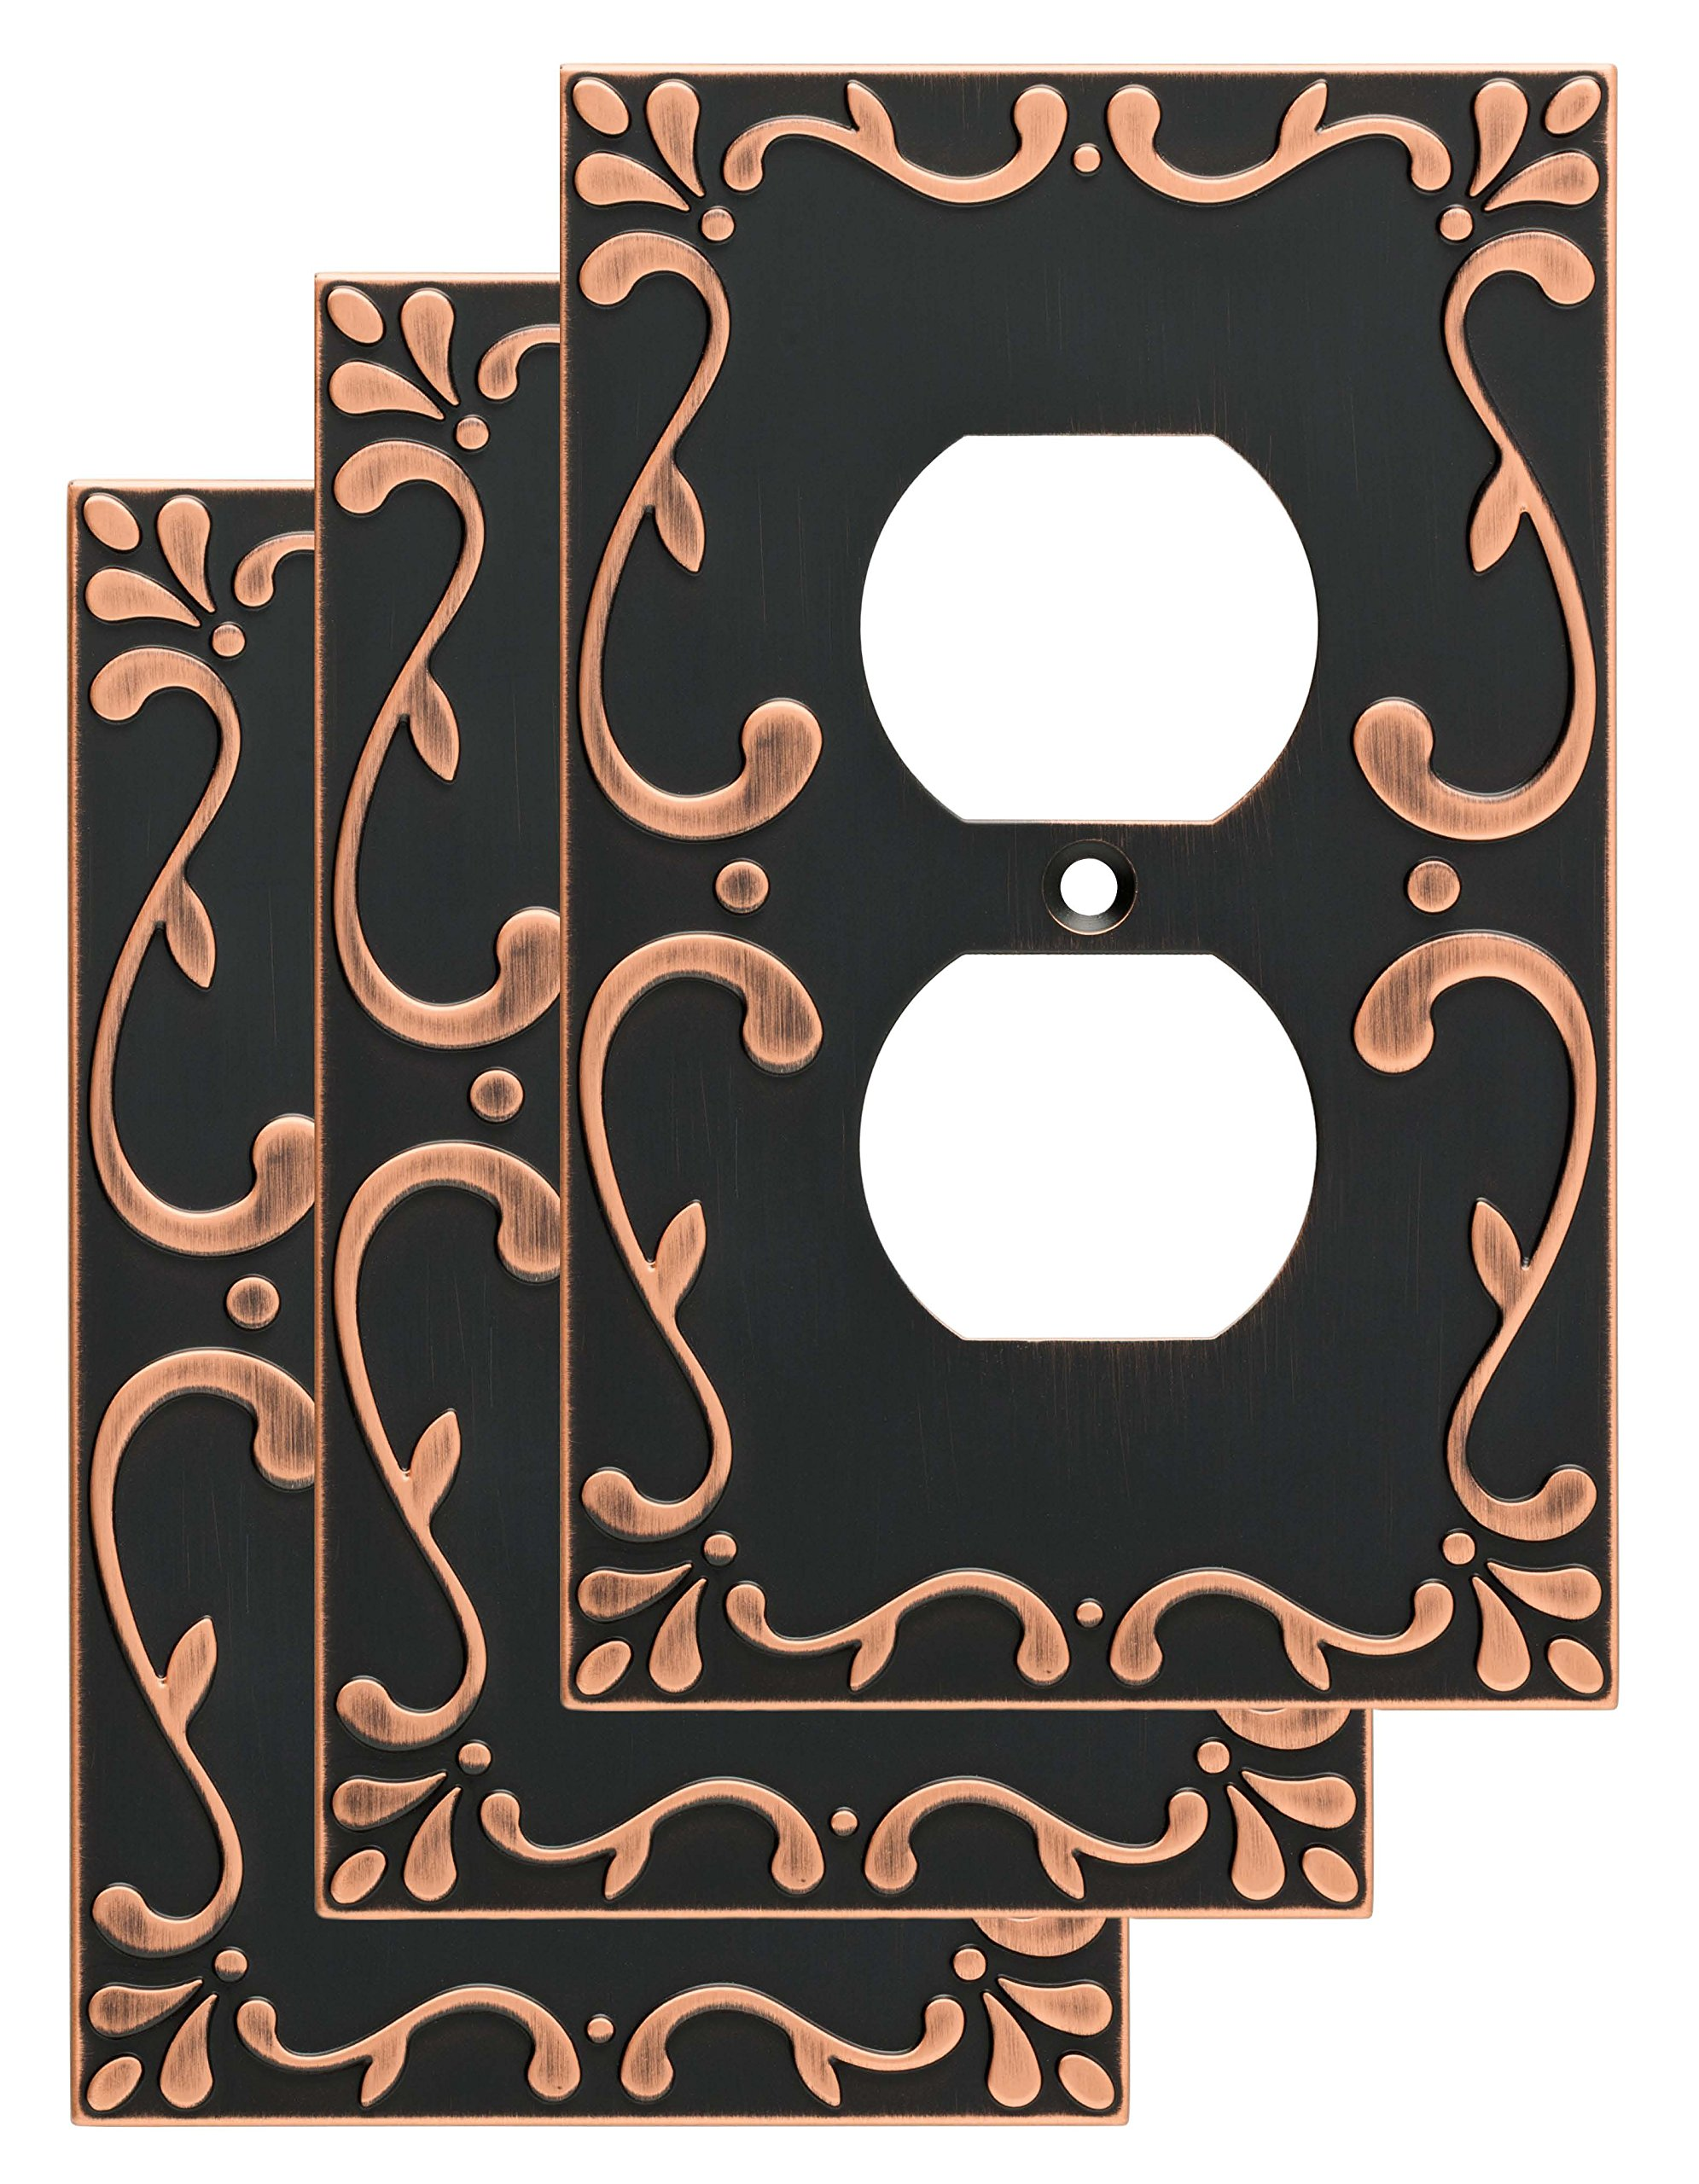 Franklin Brass W35071V-VBC-C Classic Lace Single Duplex Wall Plate/Switch Plate/Cover (3 Pack) with Copper Highlights, Bronze